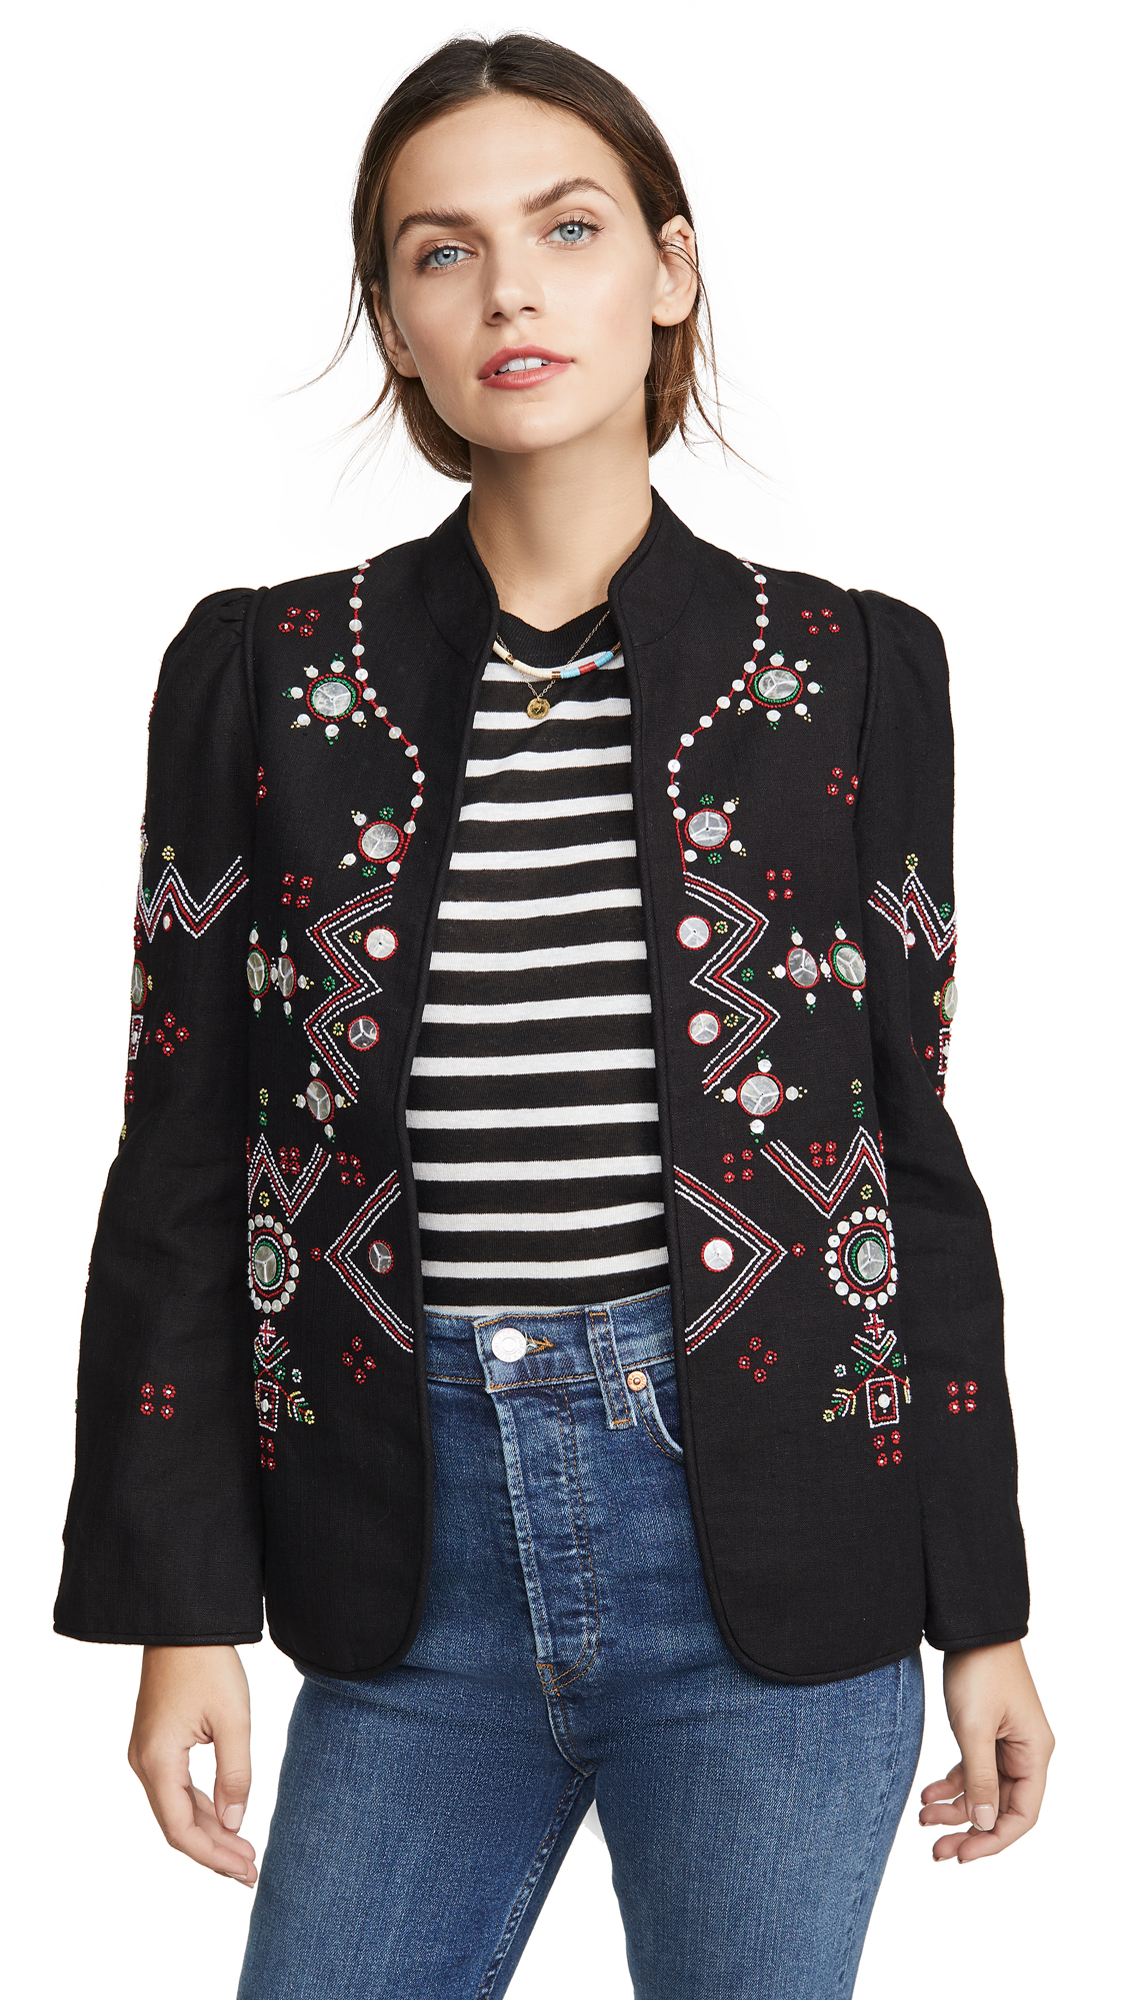 Alix of Bohemia Anja Black Jacket Folk Embroidery - Black